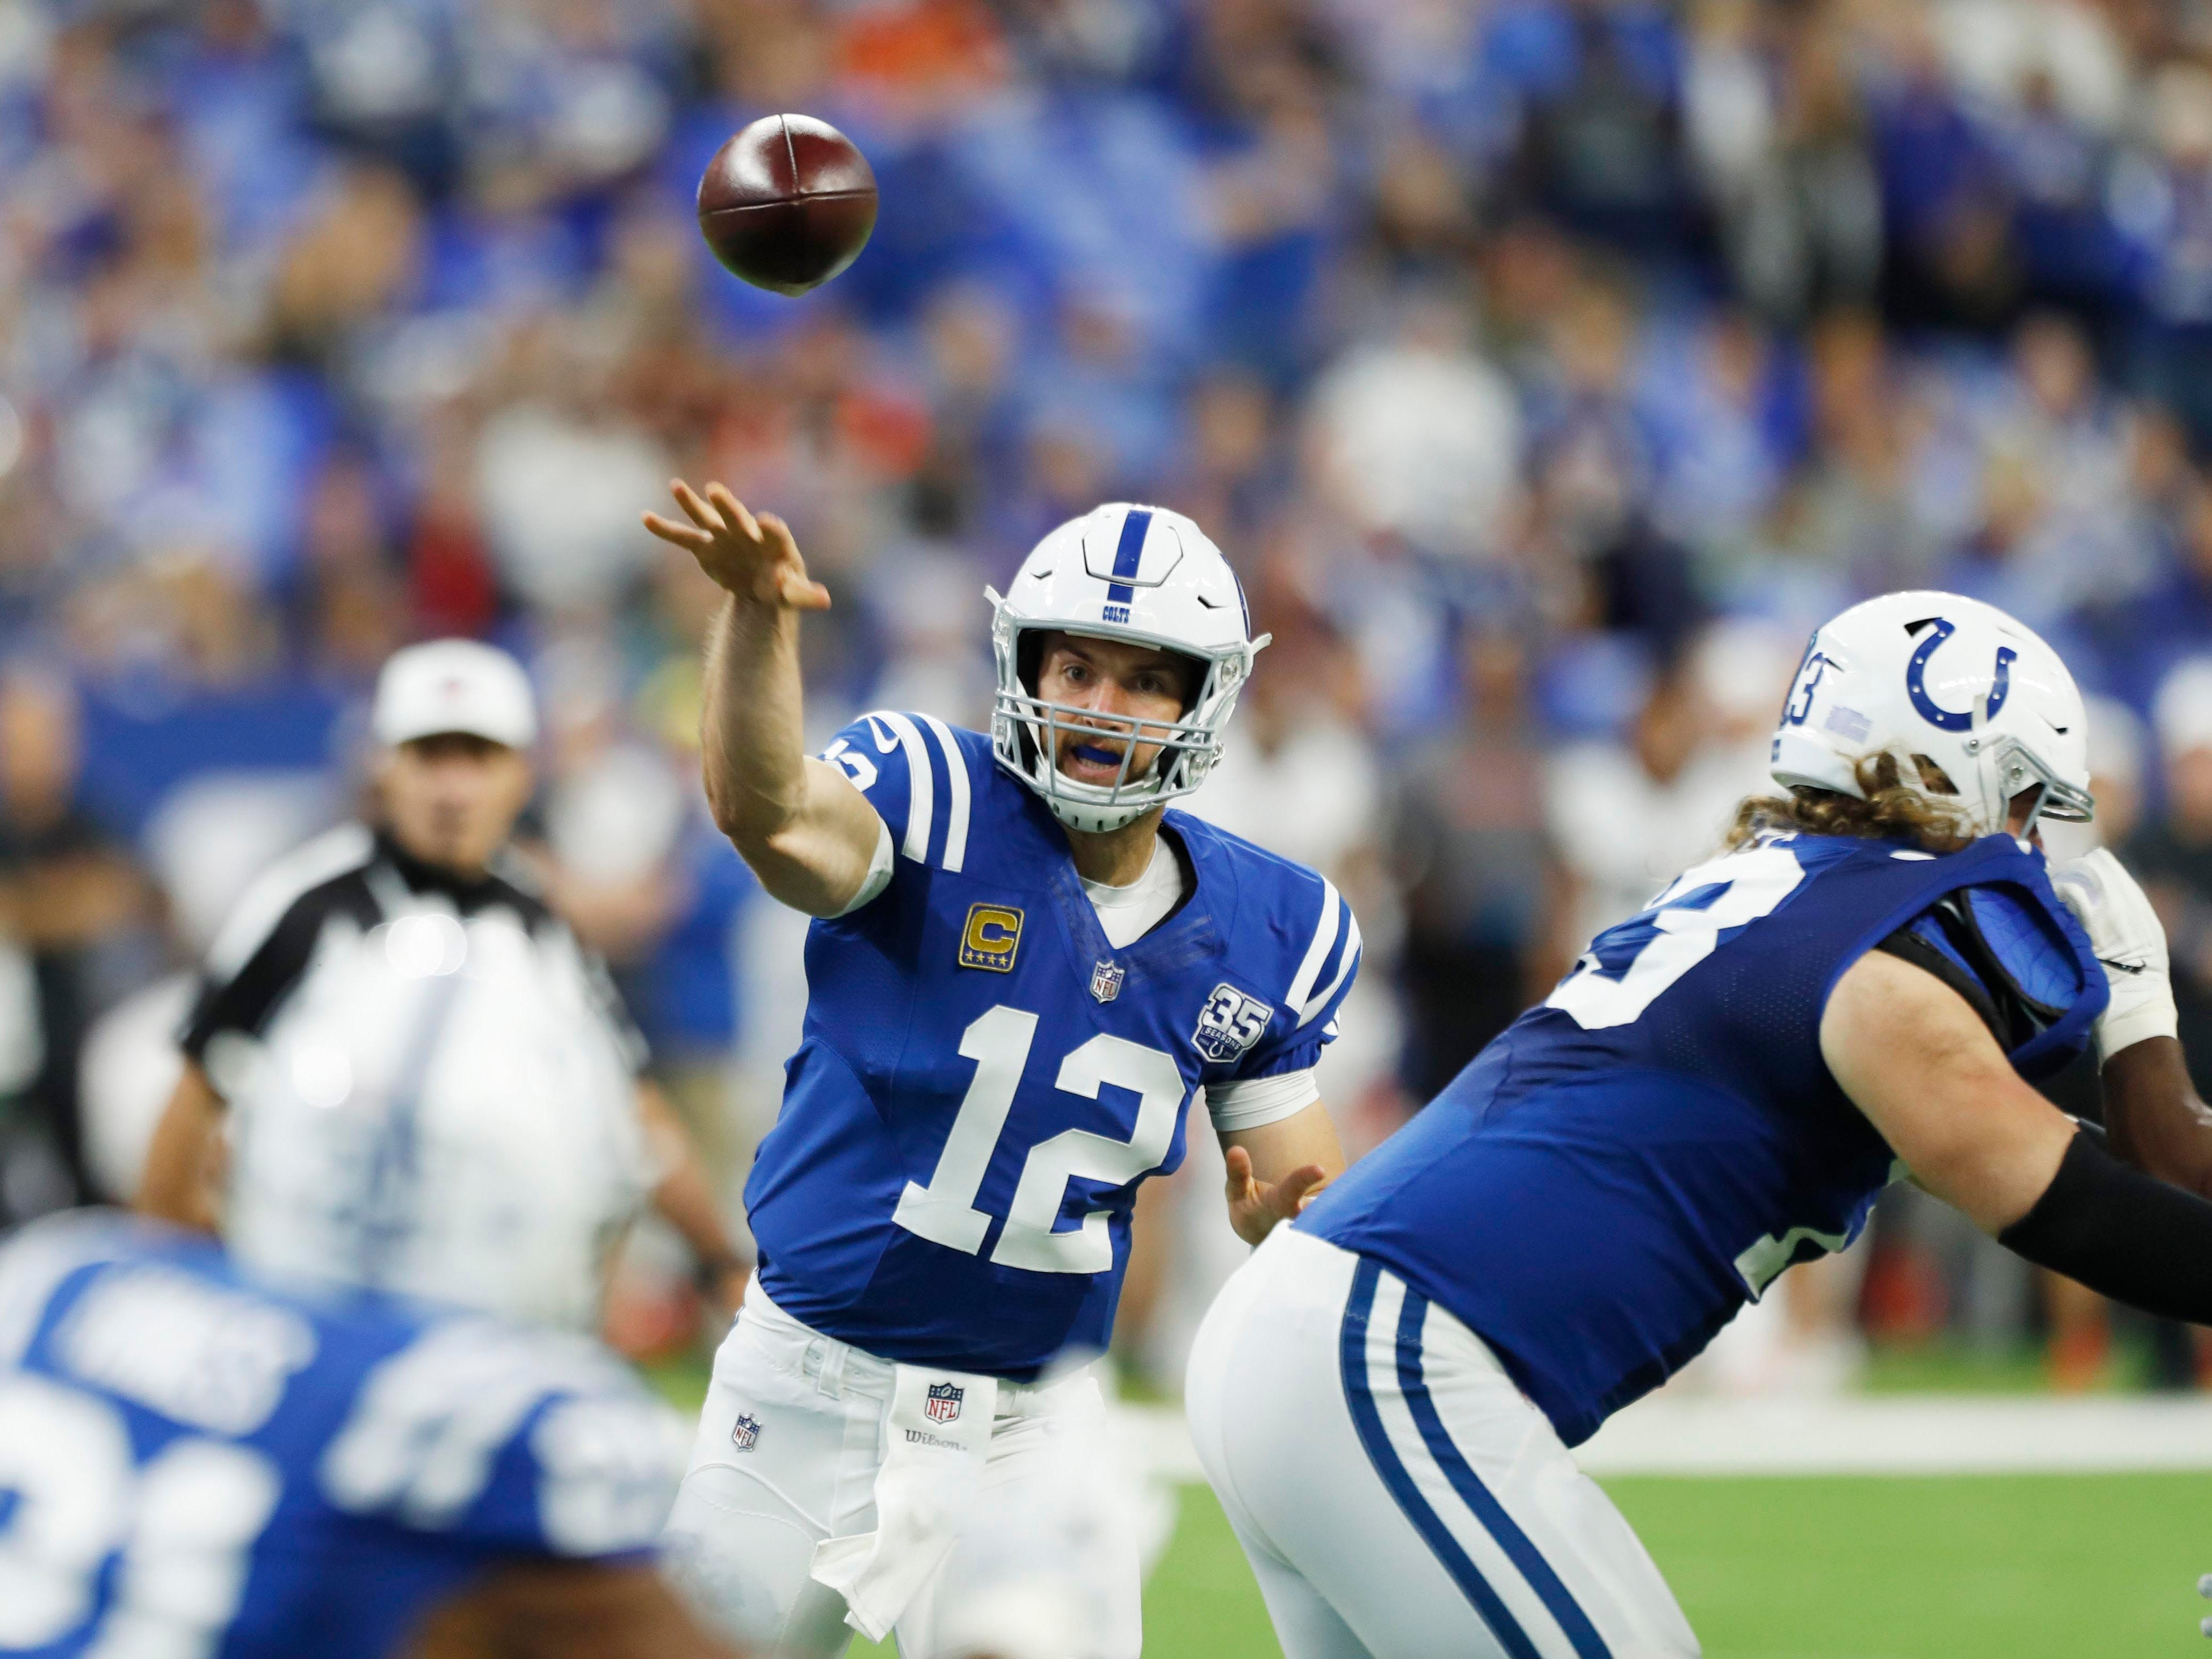 Indianapolis Colts quarterback Andrew Luck throws a pass against the Cincinnati Bengals during the first quarter at Lucas Oil Stadium.